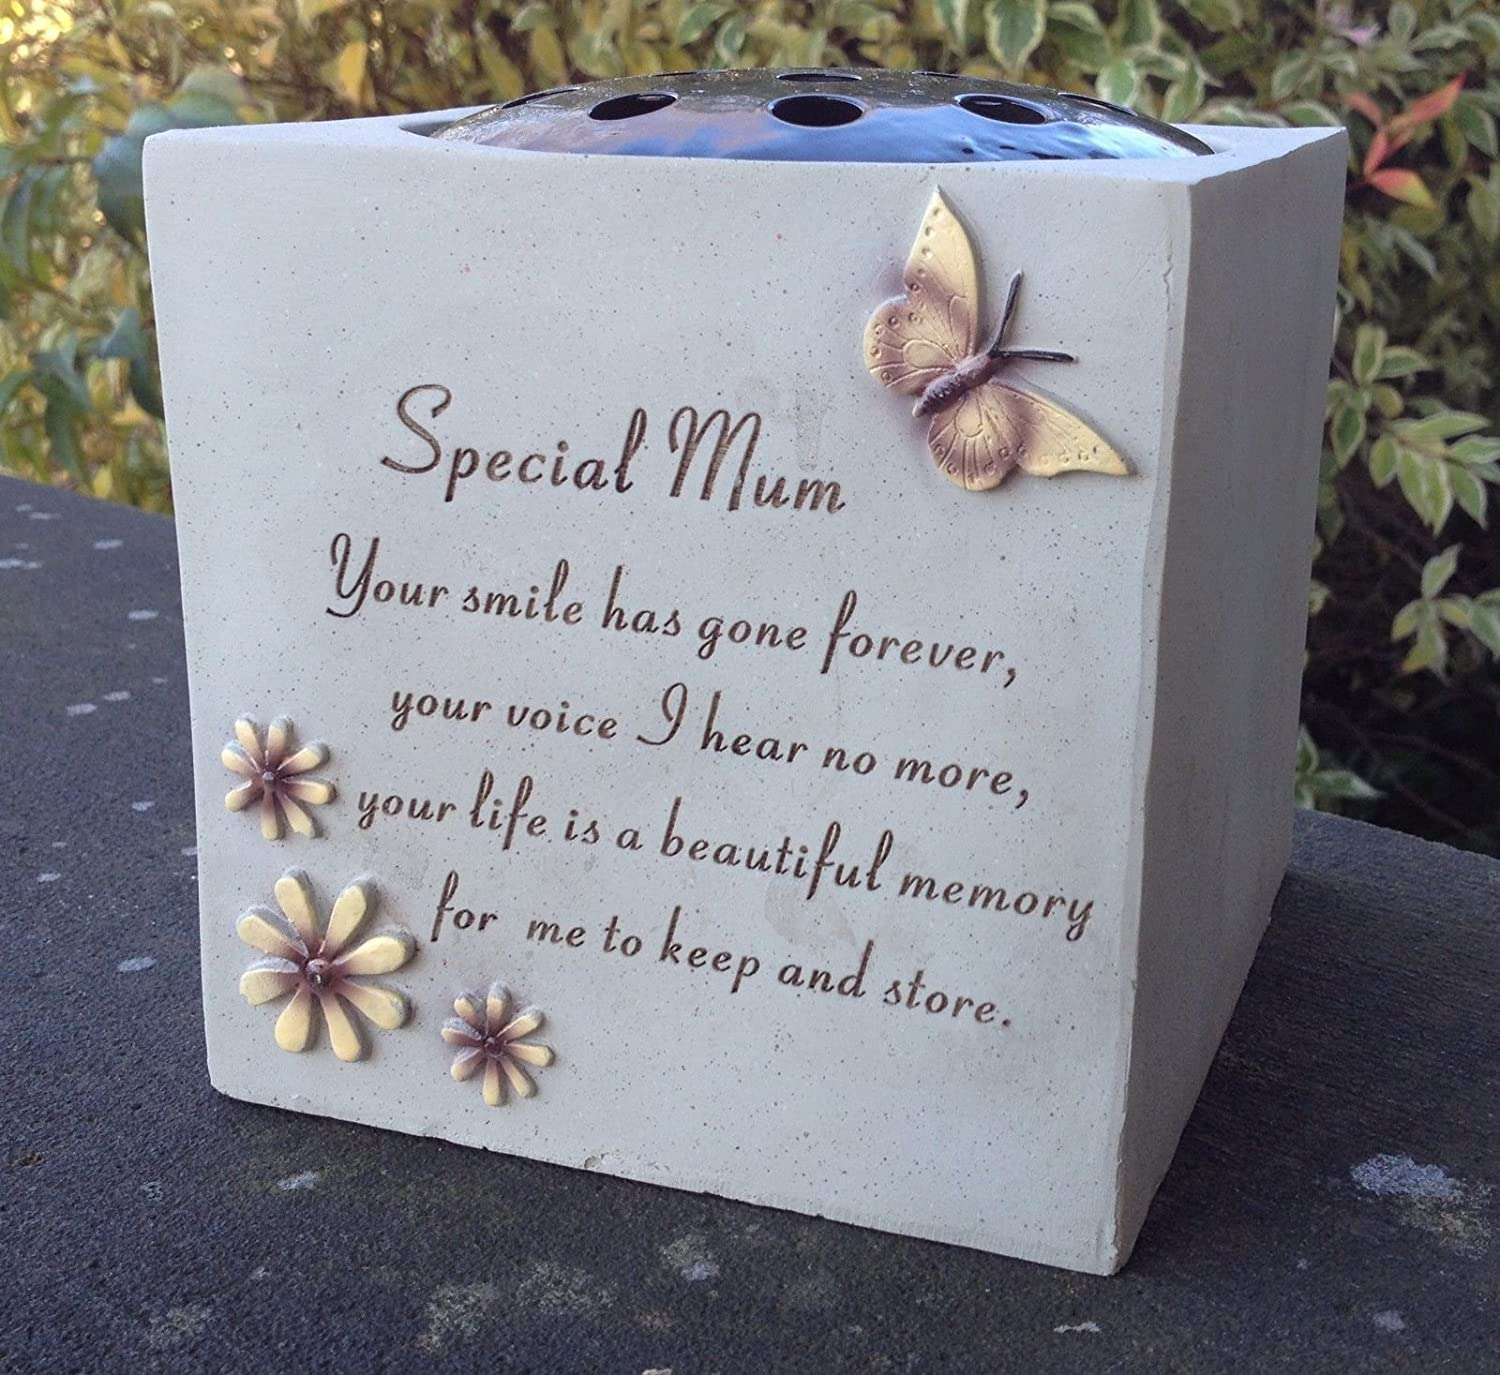 Special mum grave vase rose bowl with butterfly and flowers special mum grave vase rose bowl with butterfly and flowers memorial garden graveside amazon kitchen home izmirmasajfo Gallery